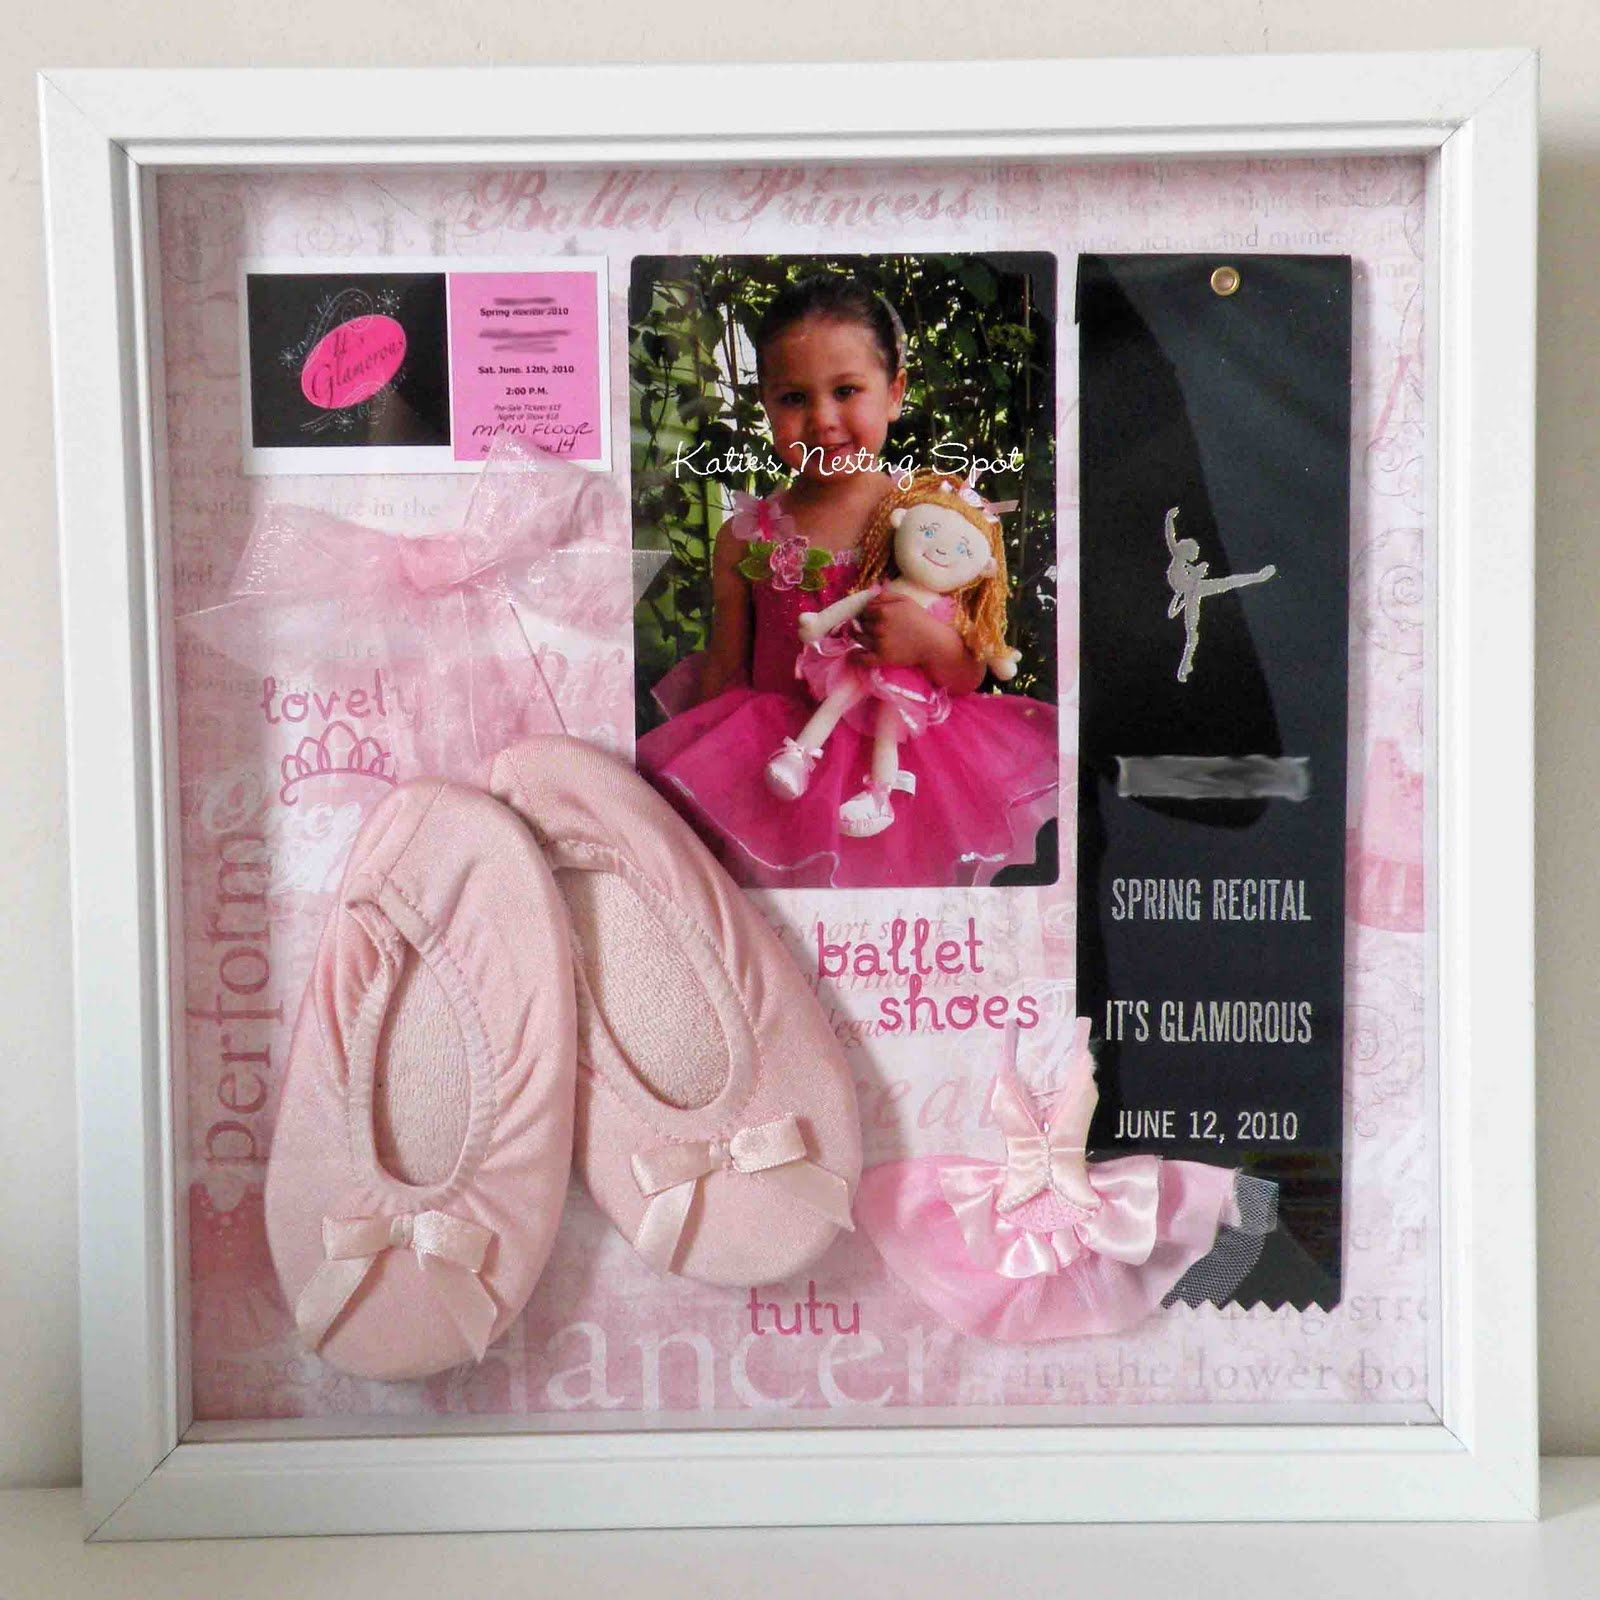 cute way to display first dance recital memories might be cute to